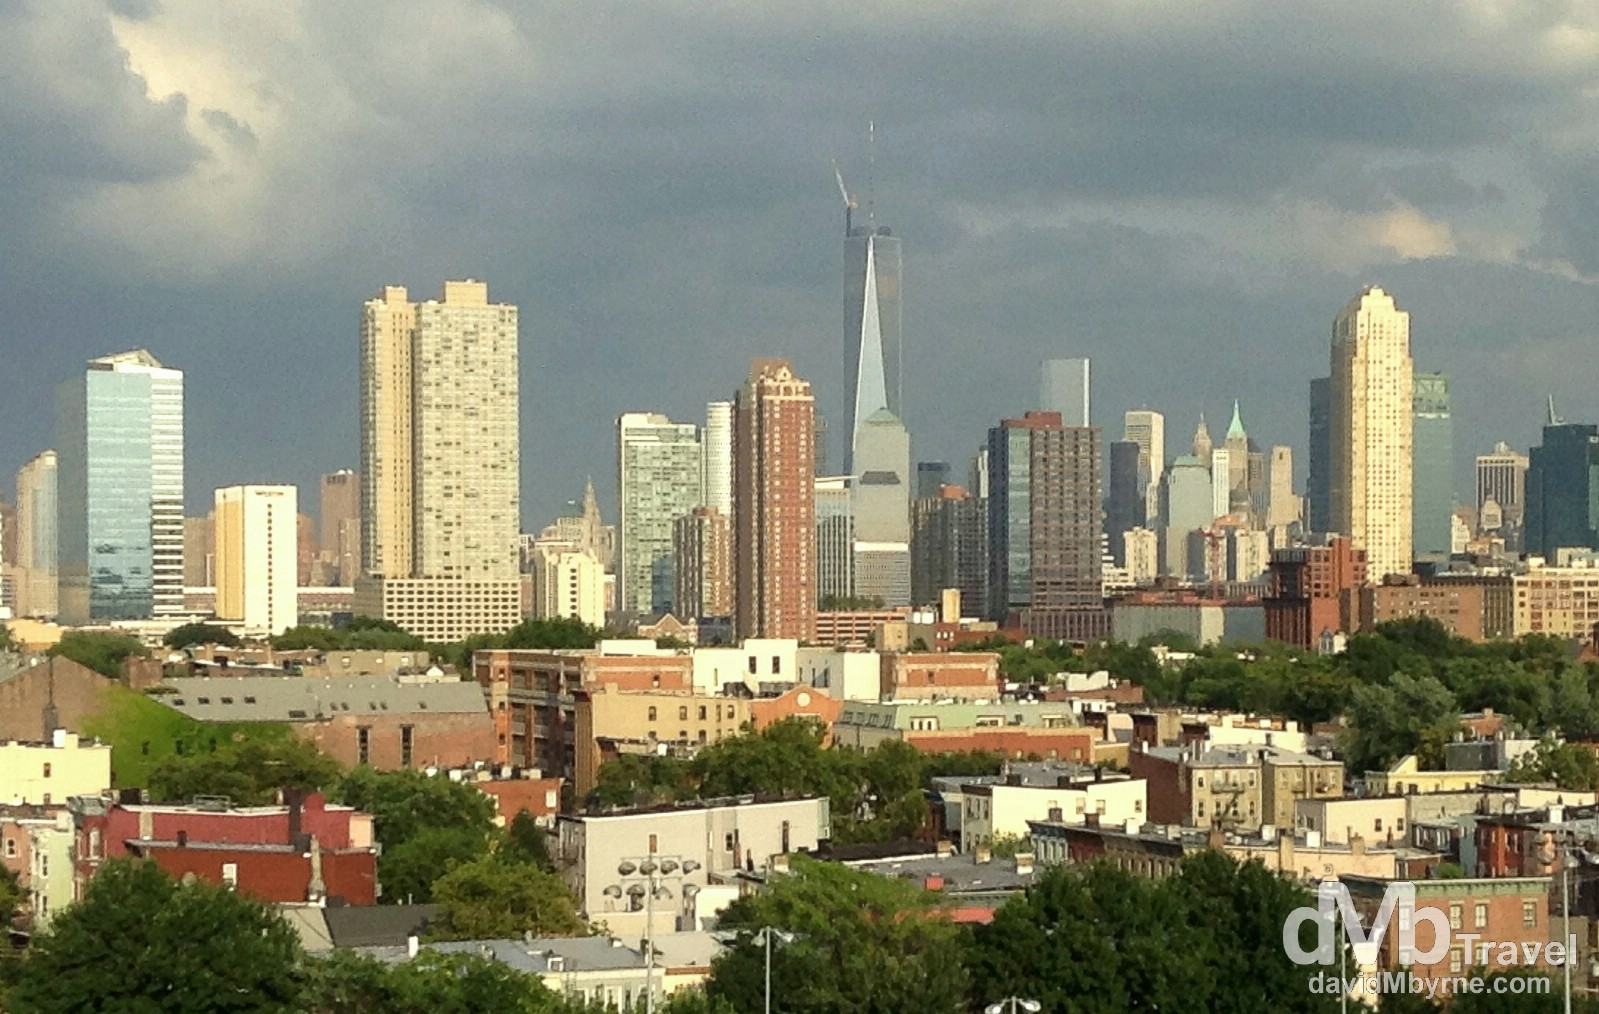 An iPod shot of the Manhattan skyline from New Jersey. Taken from the approaching the city. July 11th 2013. (iPod)